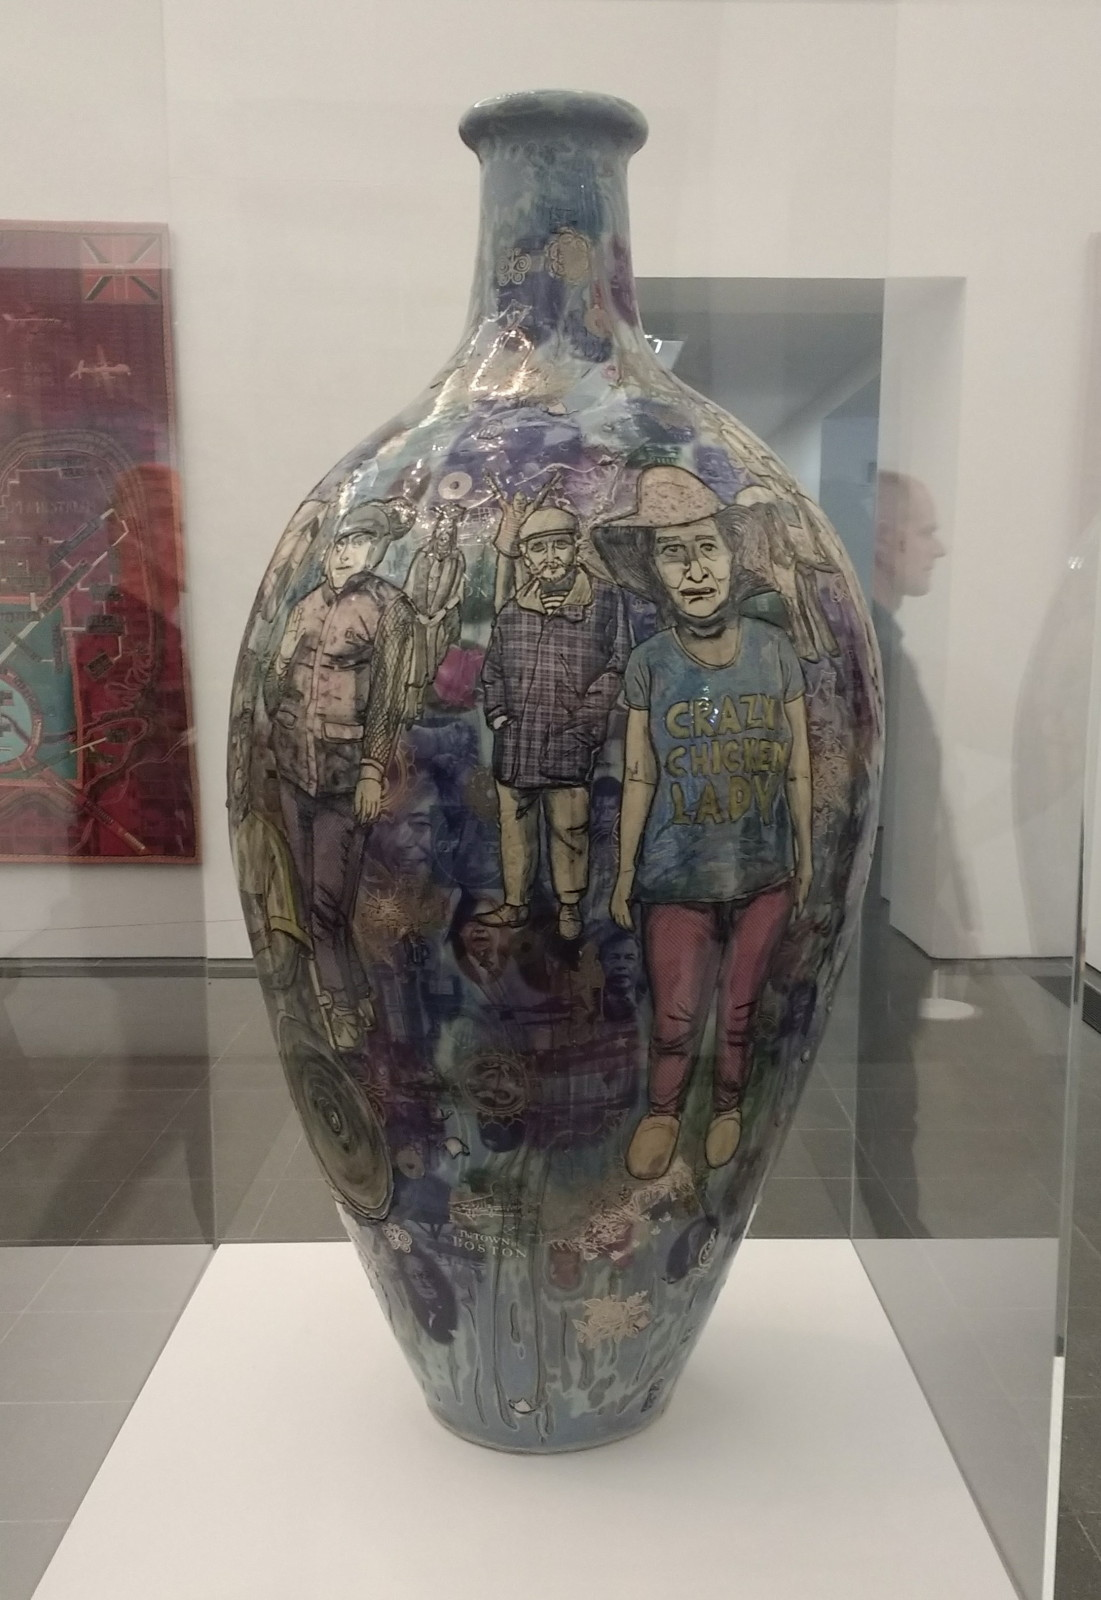 London grayson perrys the most popular art exhibition ever and the brexit vases above were of course excellent though my favourite vase was actually the first one in this post showing trump farage theresa may reviewsmspy